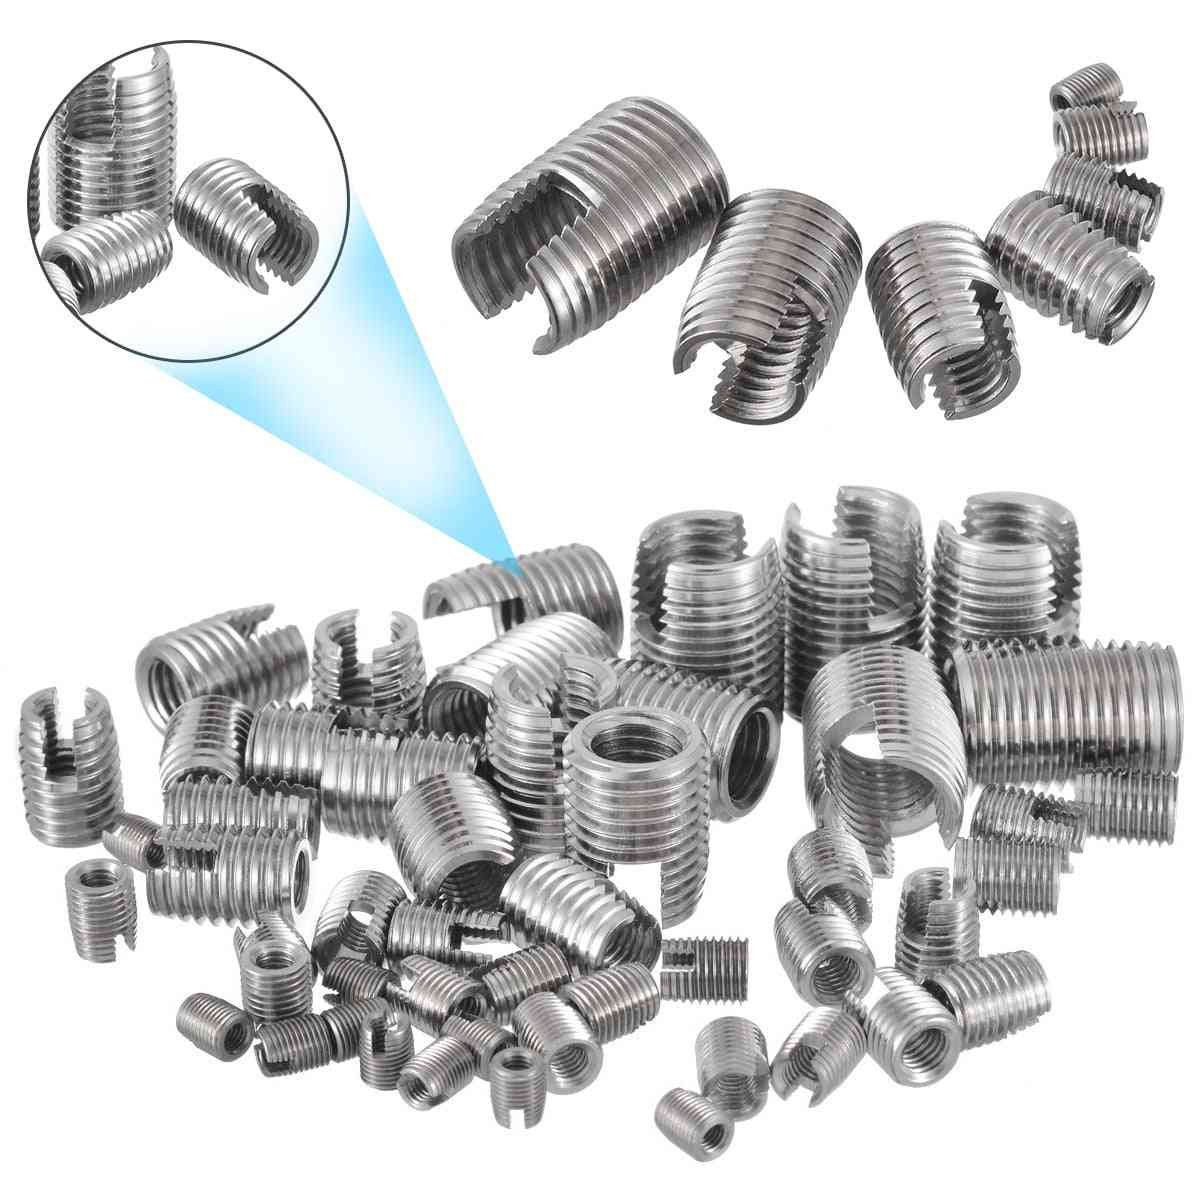 Stainless Steel Thread Repair Insert Kit -helical Self Tapping Slotted Screw